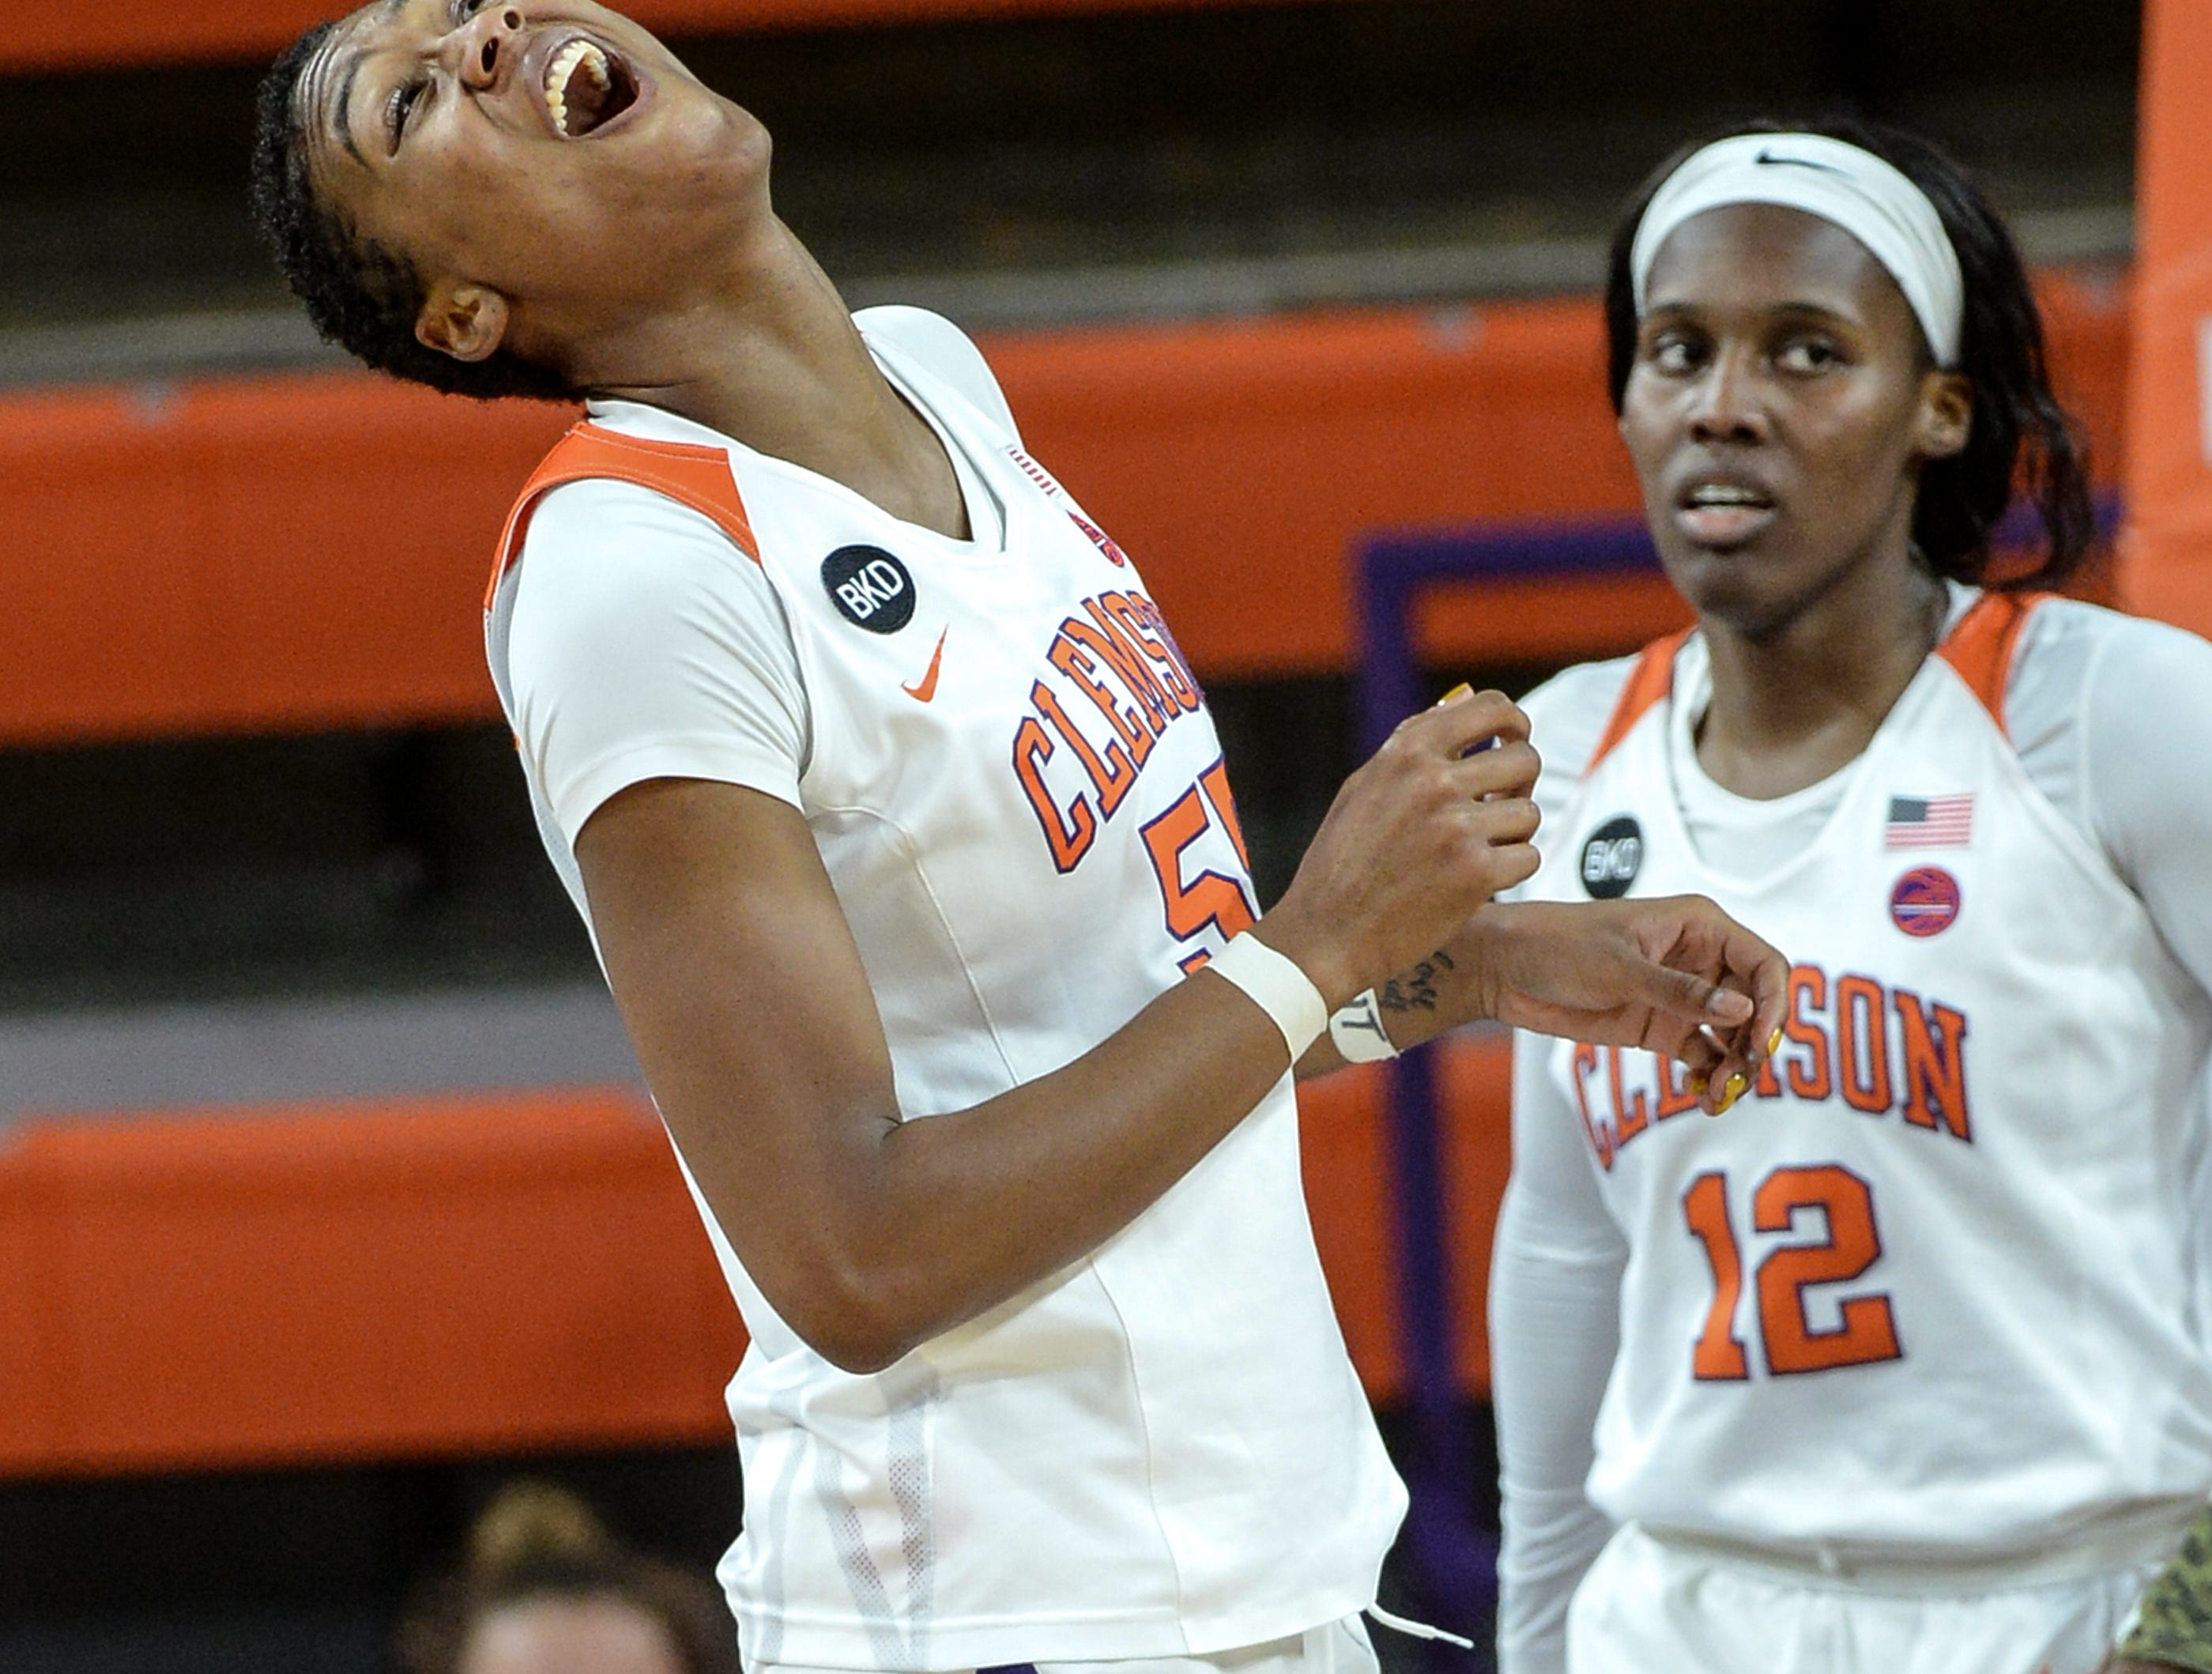 Clemson center Tylar Bennett(55) reacts after being called for a foul near teammate Aliyah Collier(12) during the fourth quarter at Littlejohn Coliseum in Clemson Thursday, January 17, 2019.